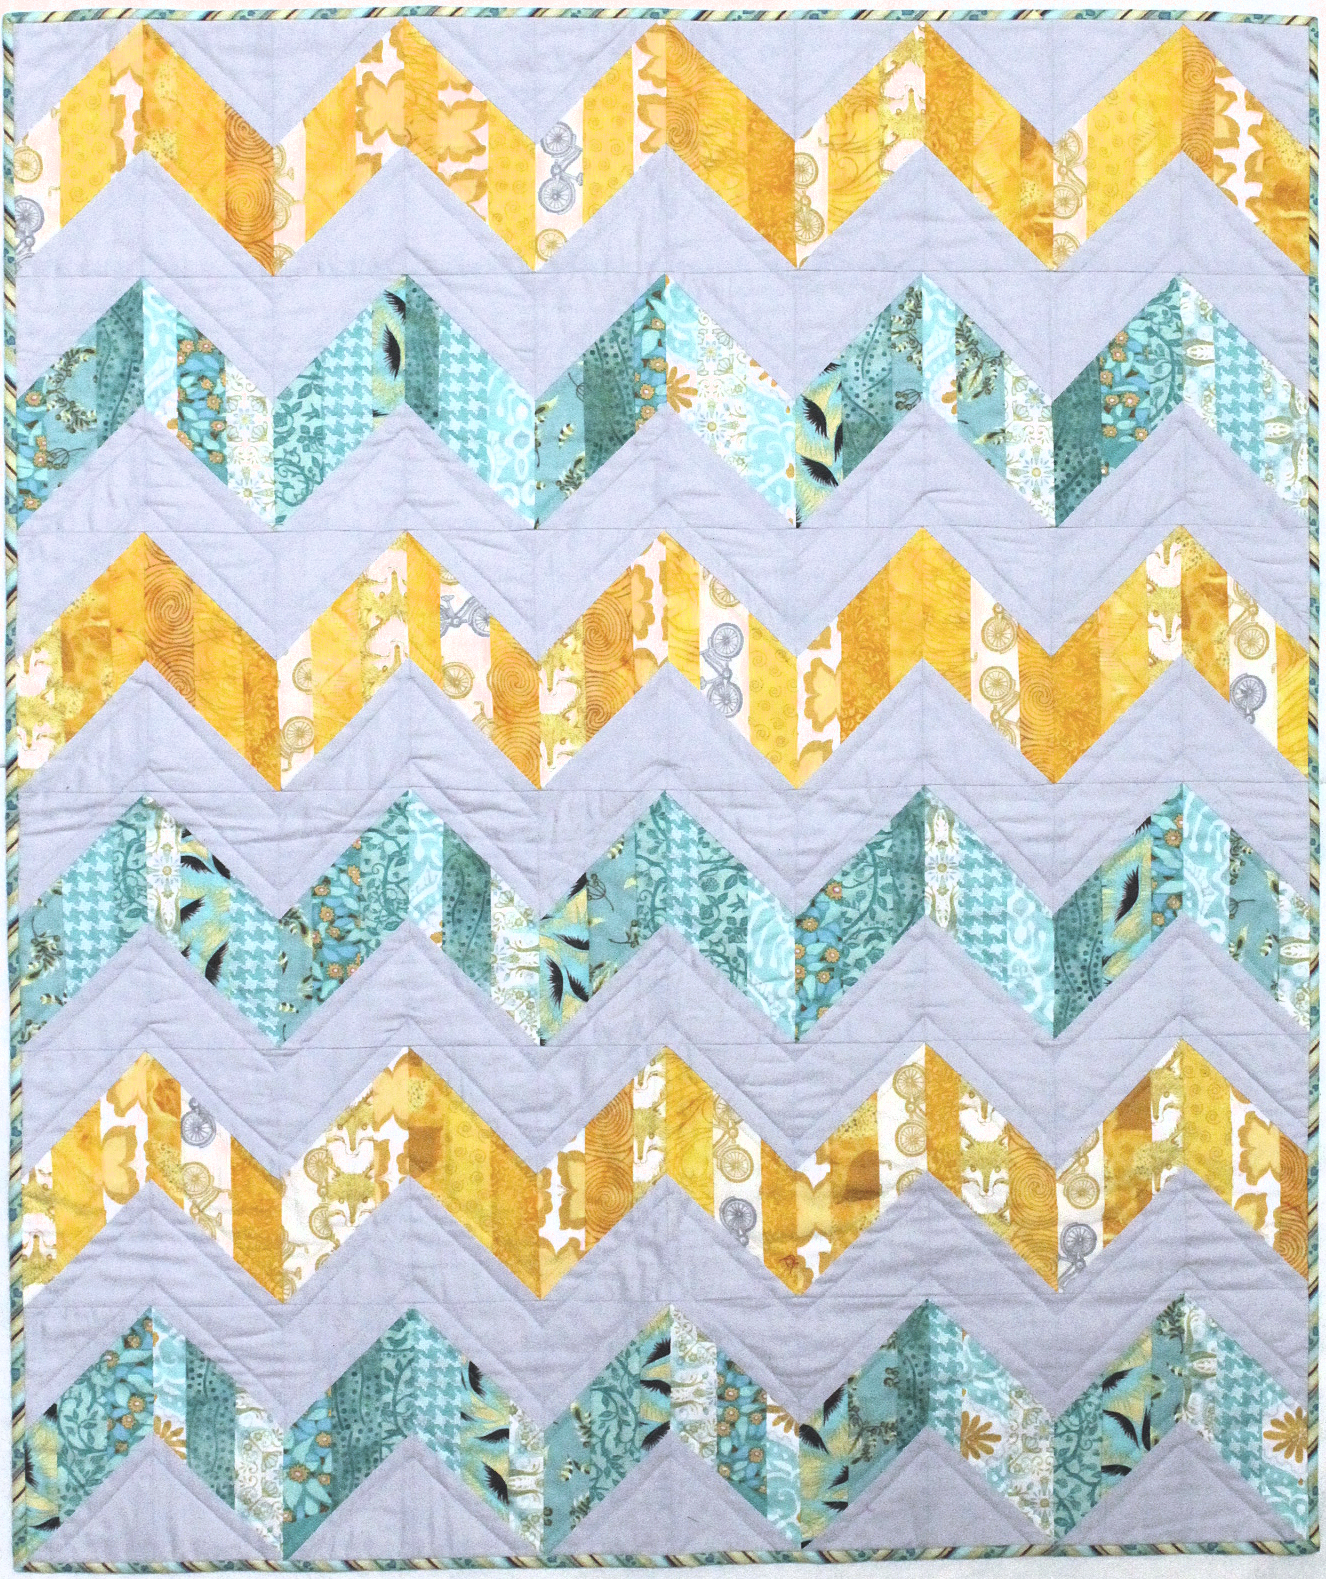 The original quilt used light gray and modern fabrics in teal and yellow